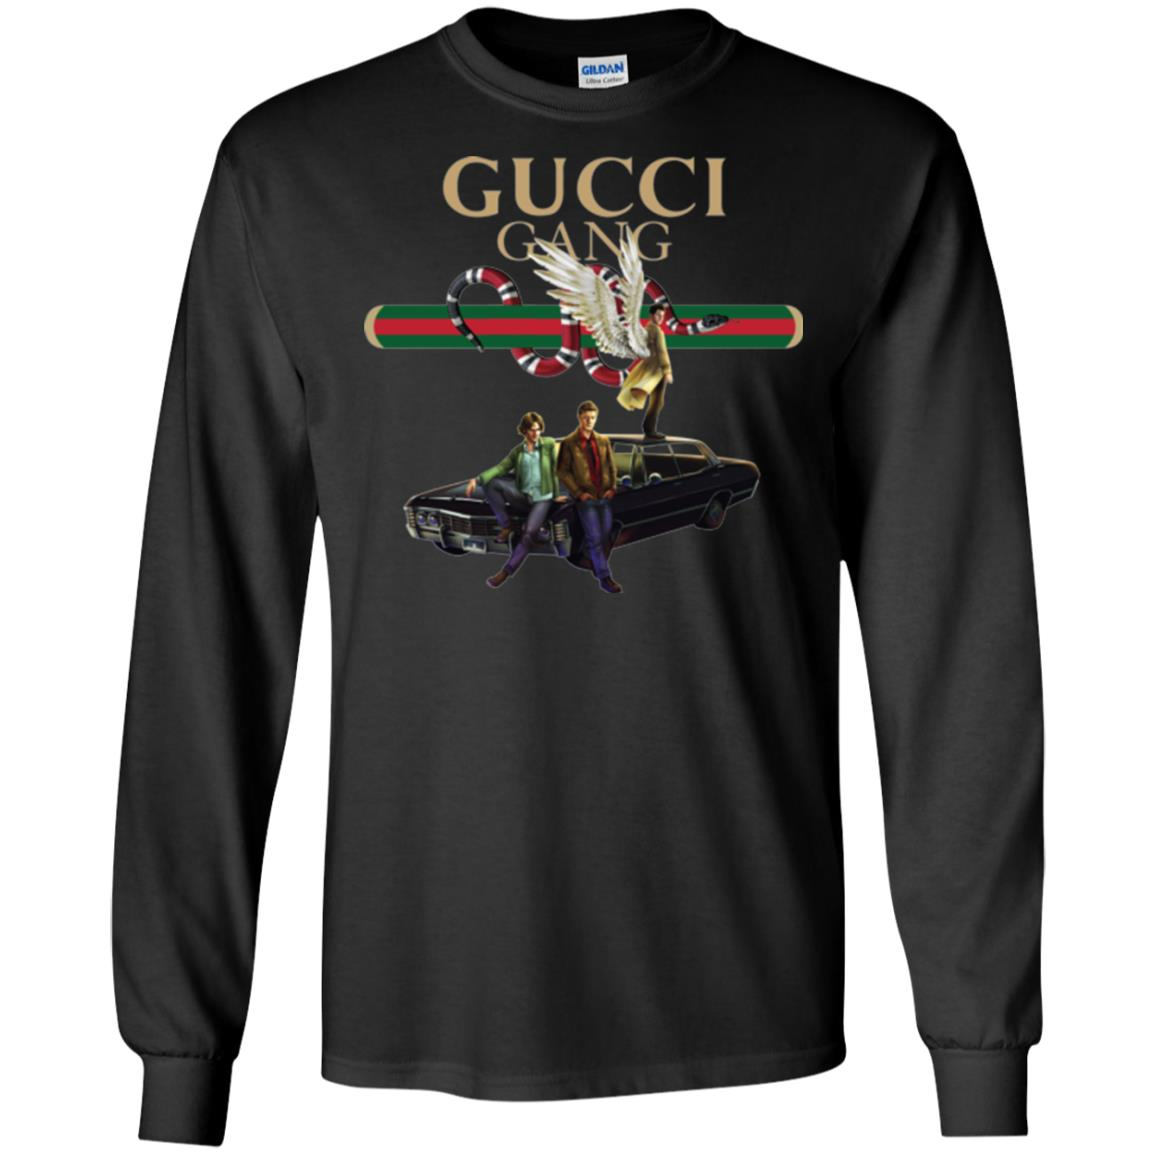 Gucci Gang Supernatural T Shirts Hoodies Tank Top